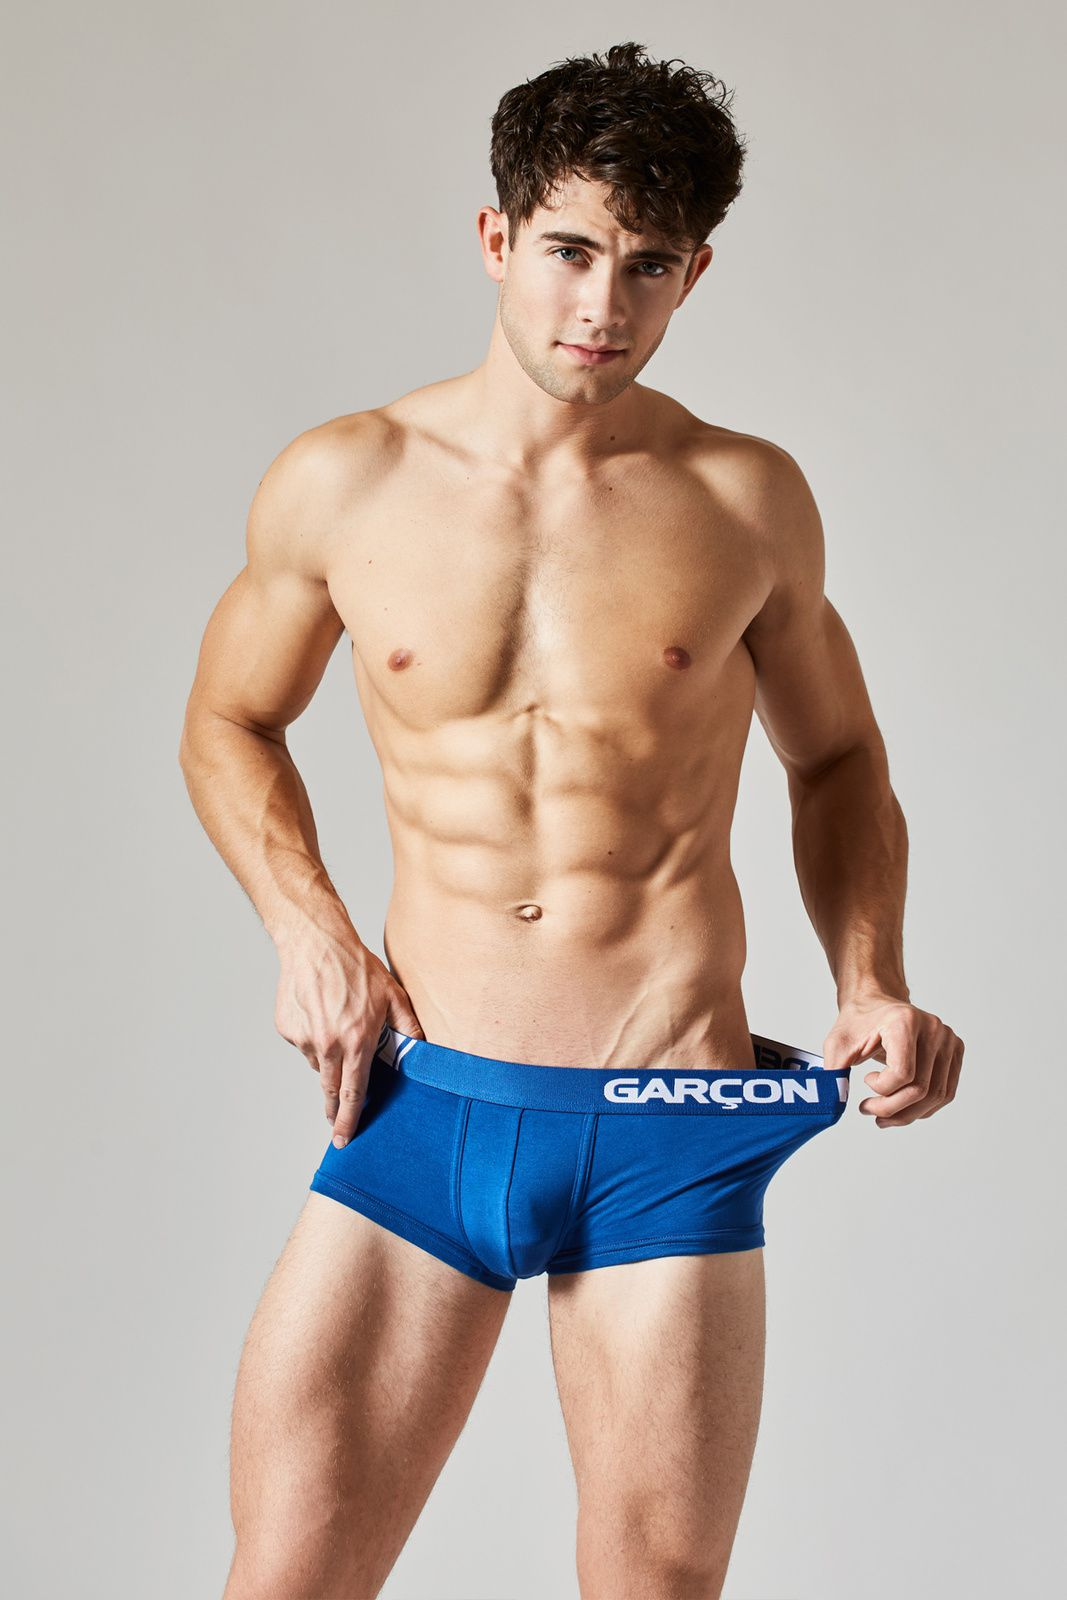 Garrett W. for Garçon Model